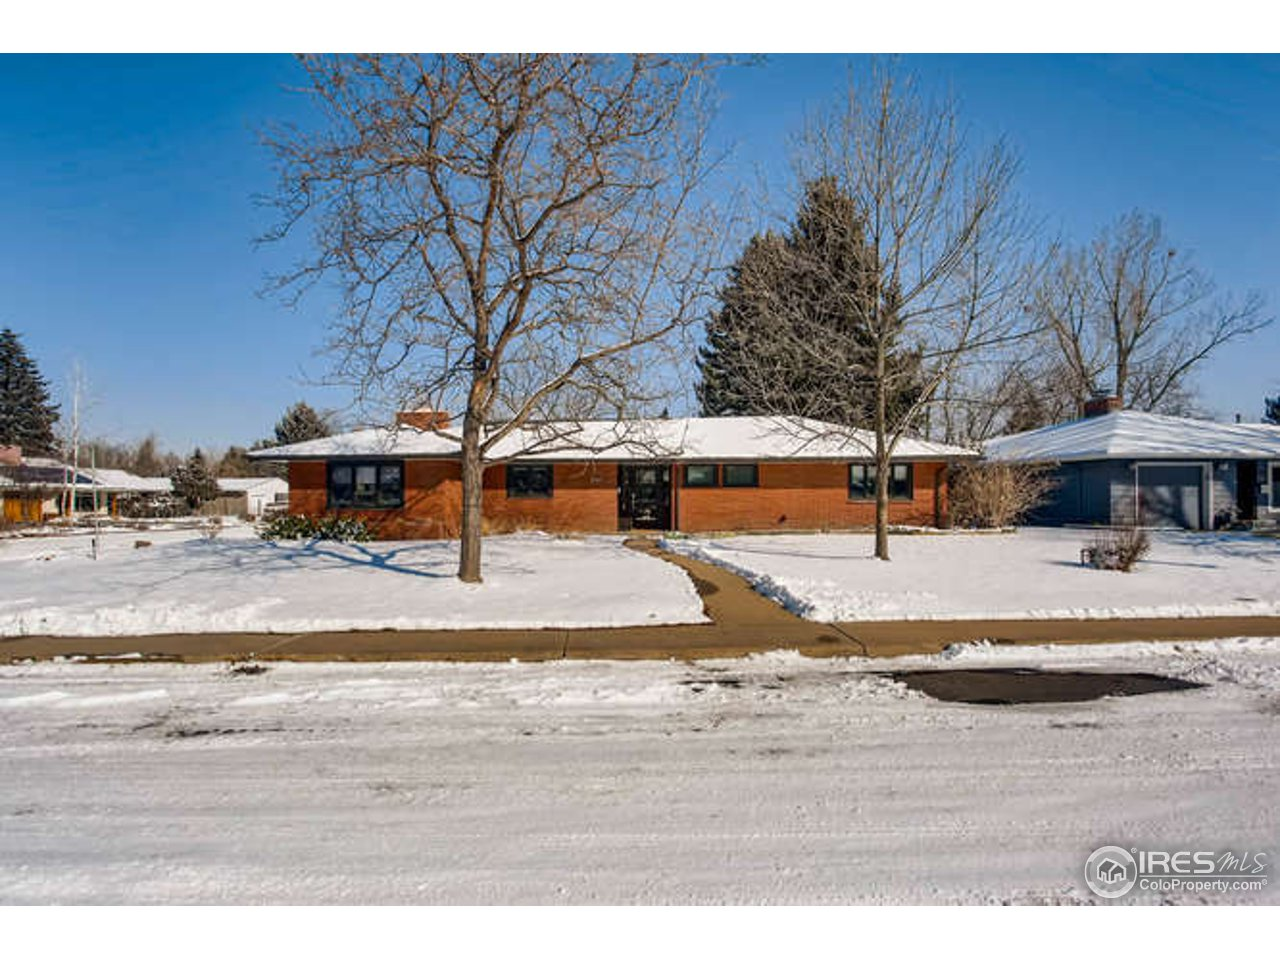 600 Monte Vista Ave, Fort Collins CO 80521